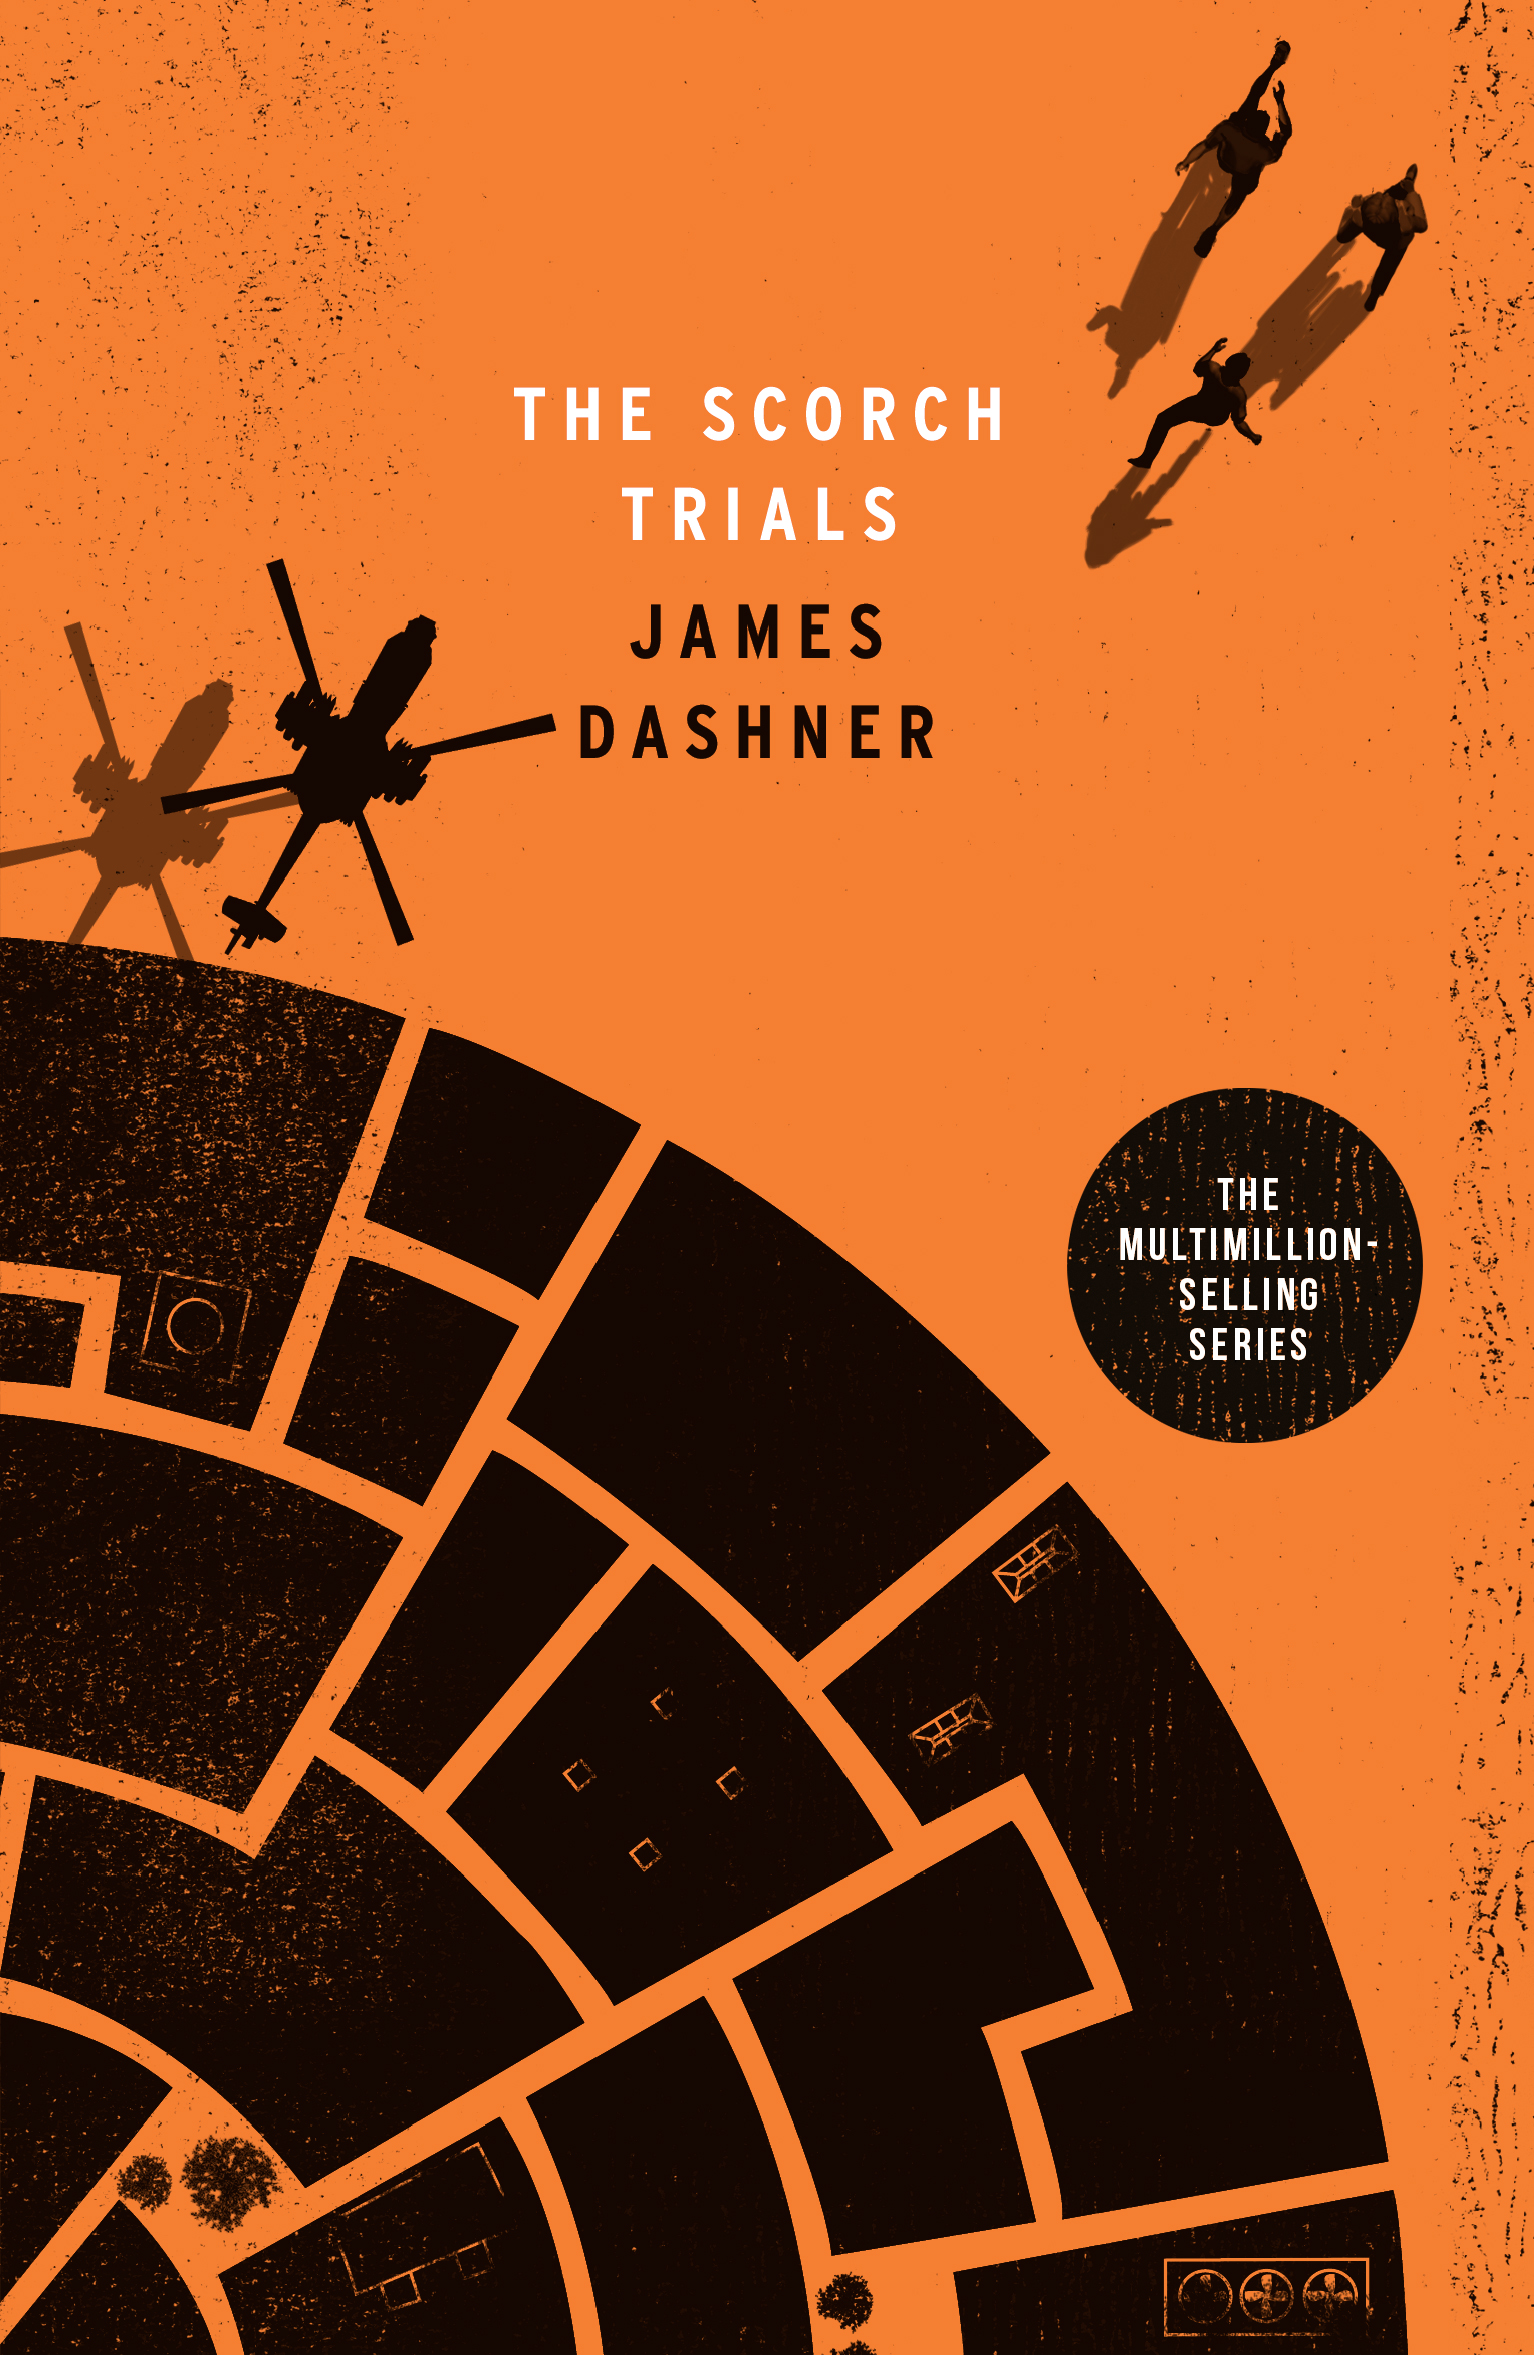 Cool Book Cover Pics : Chicken house books scorch trials